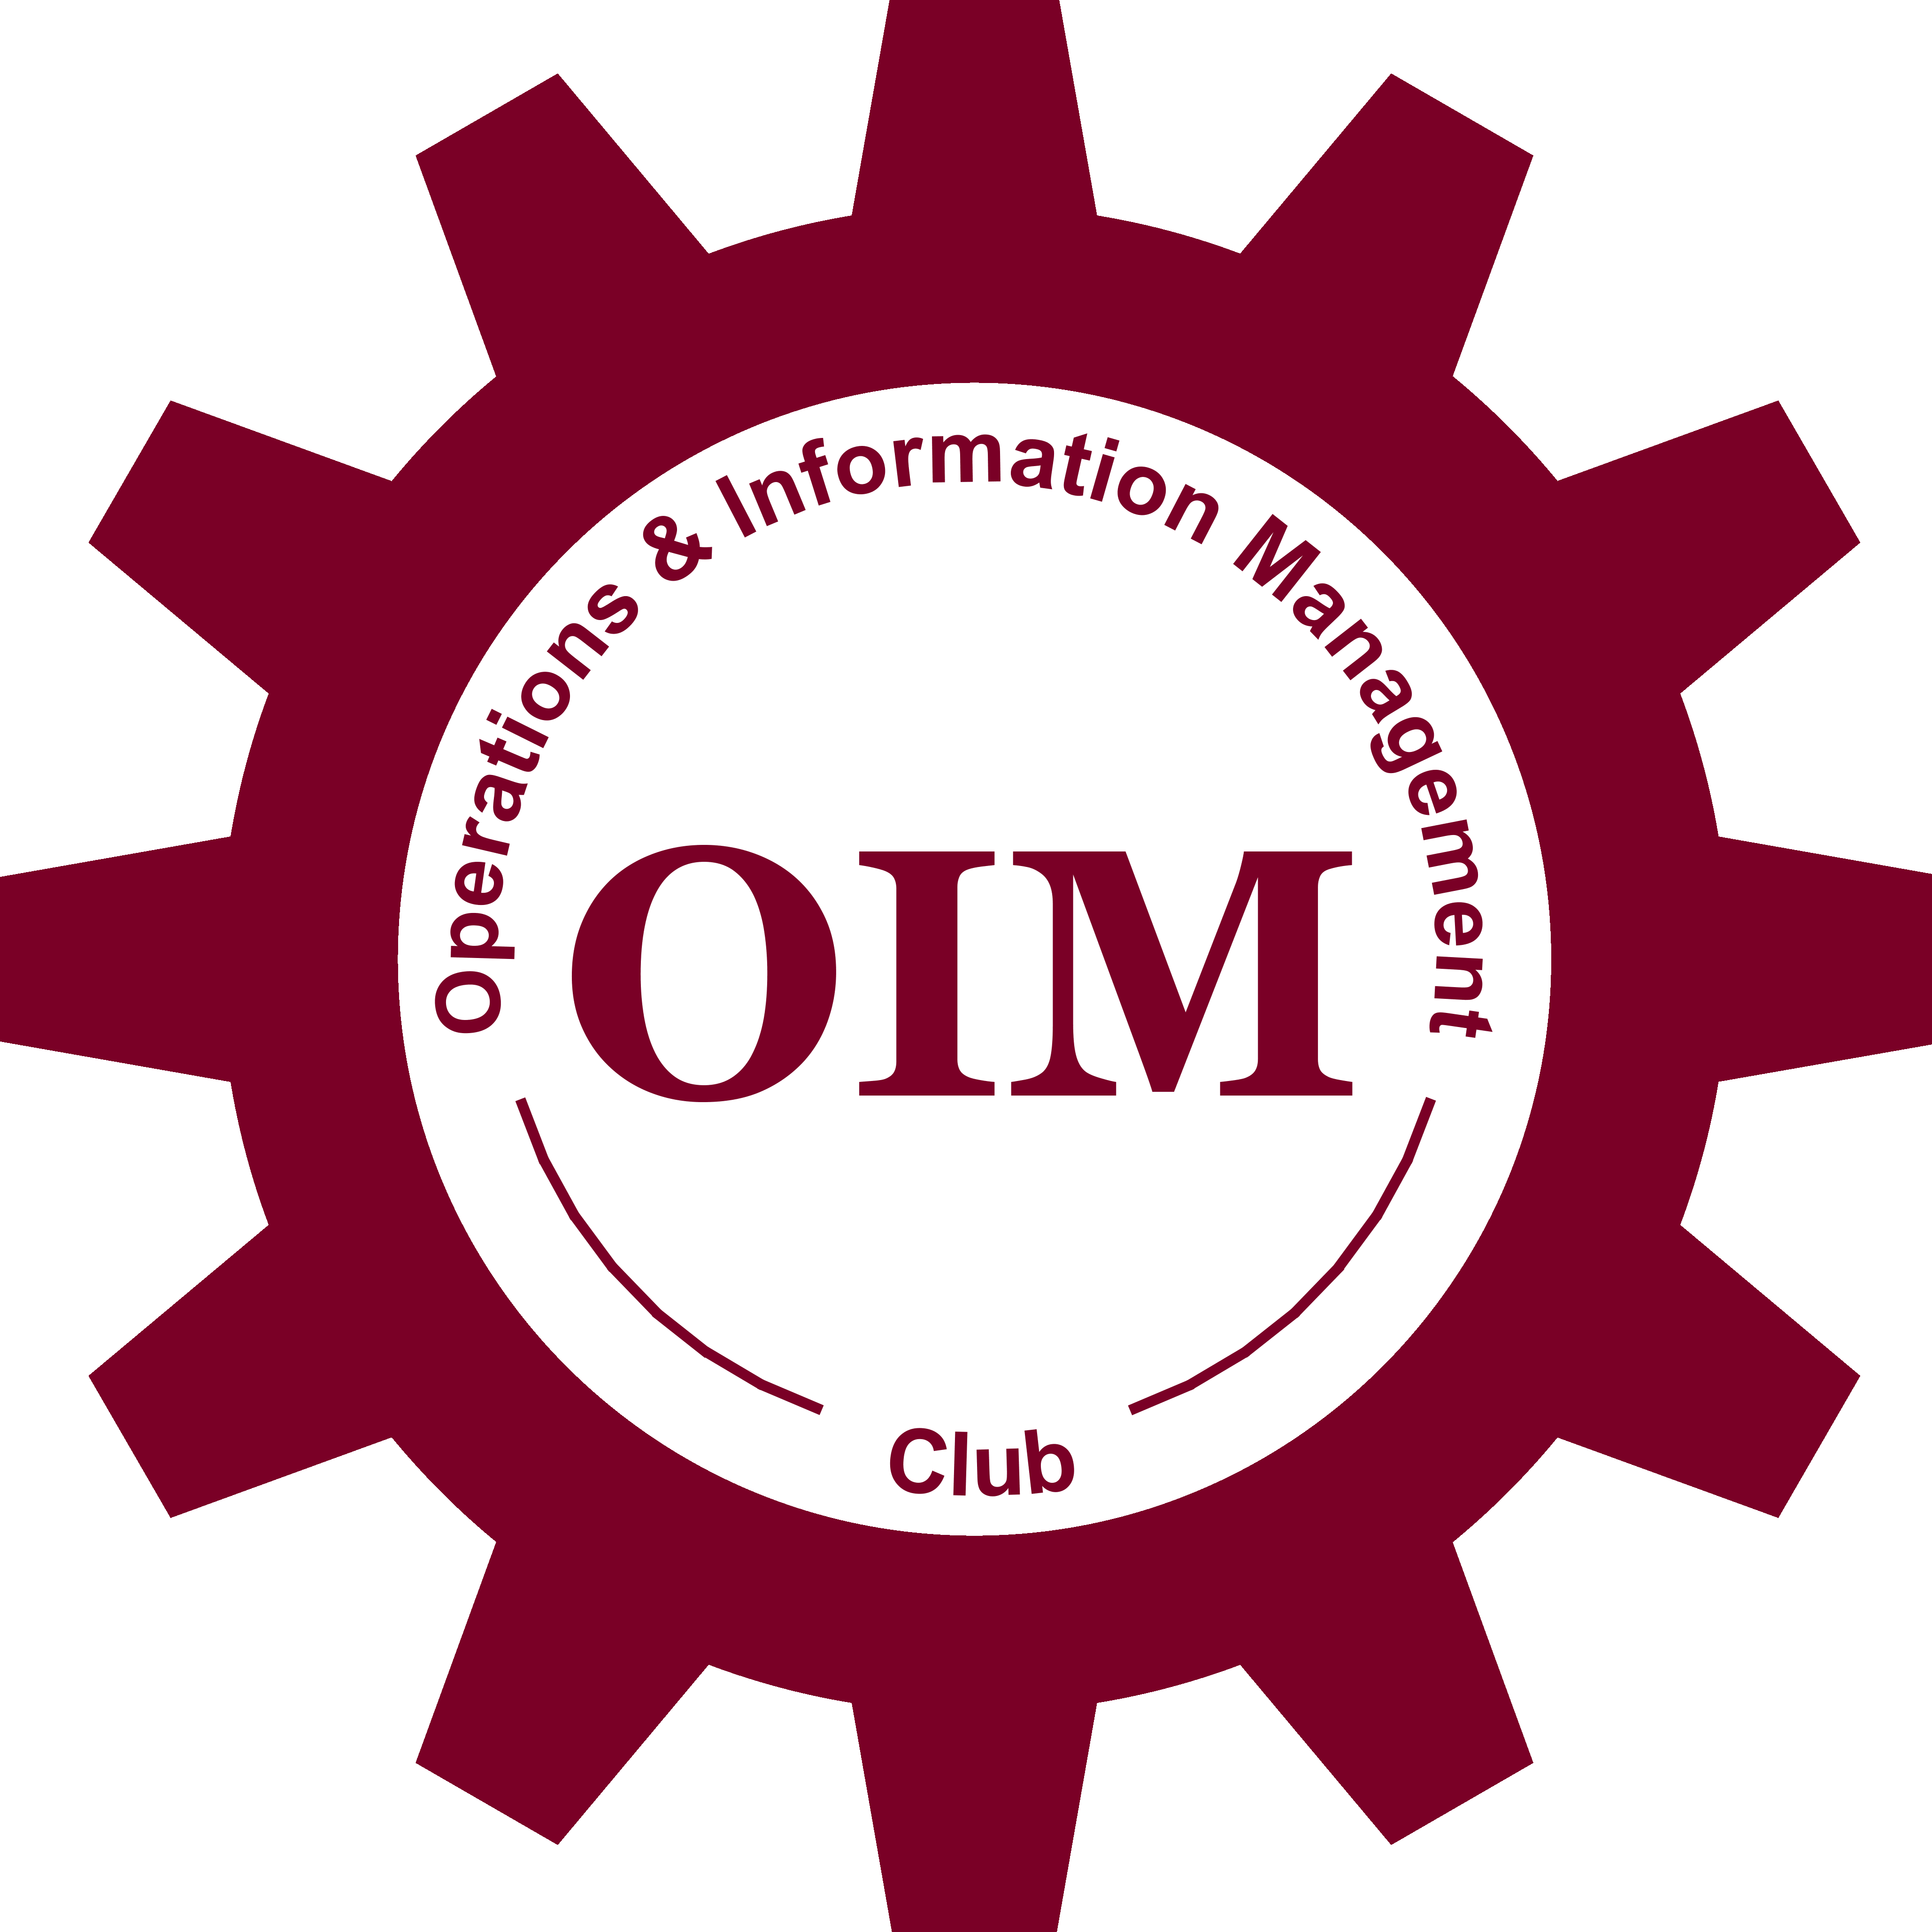 Operations and Information Management Club